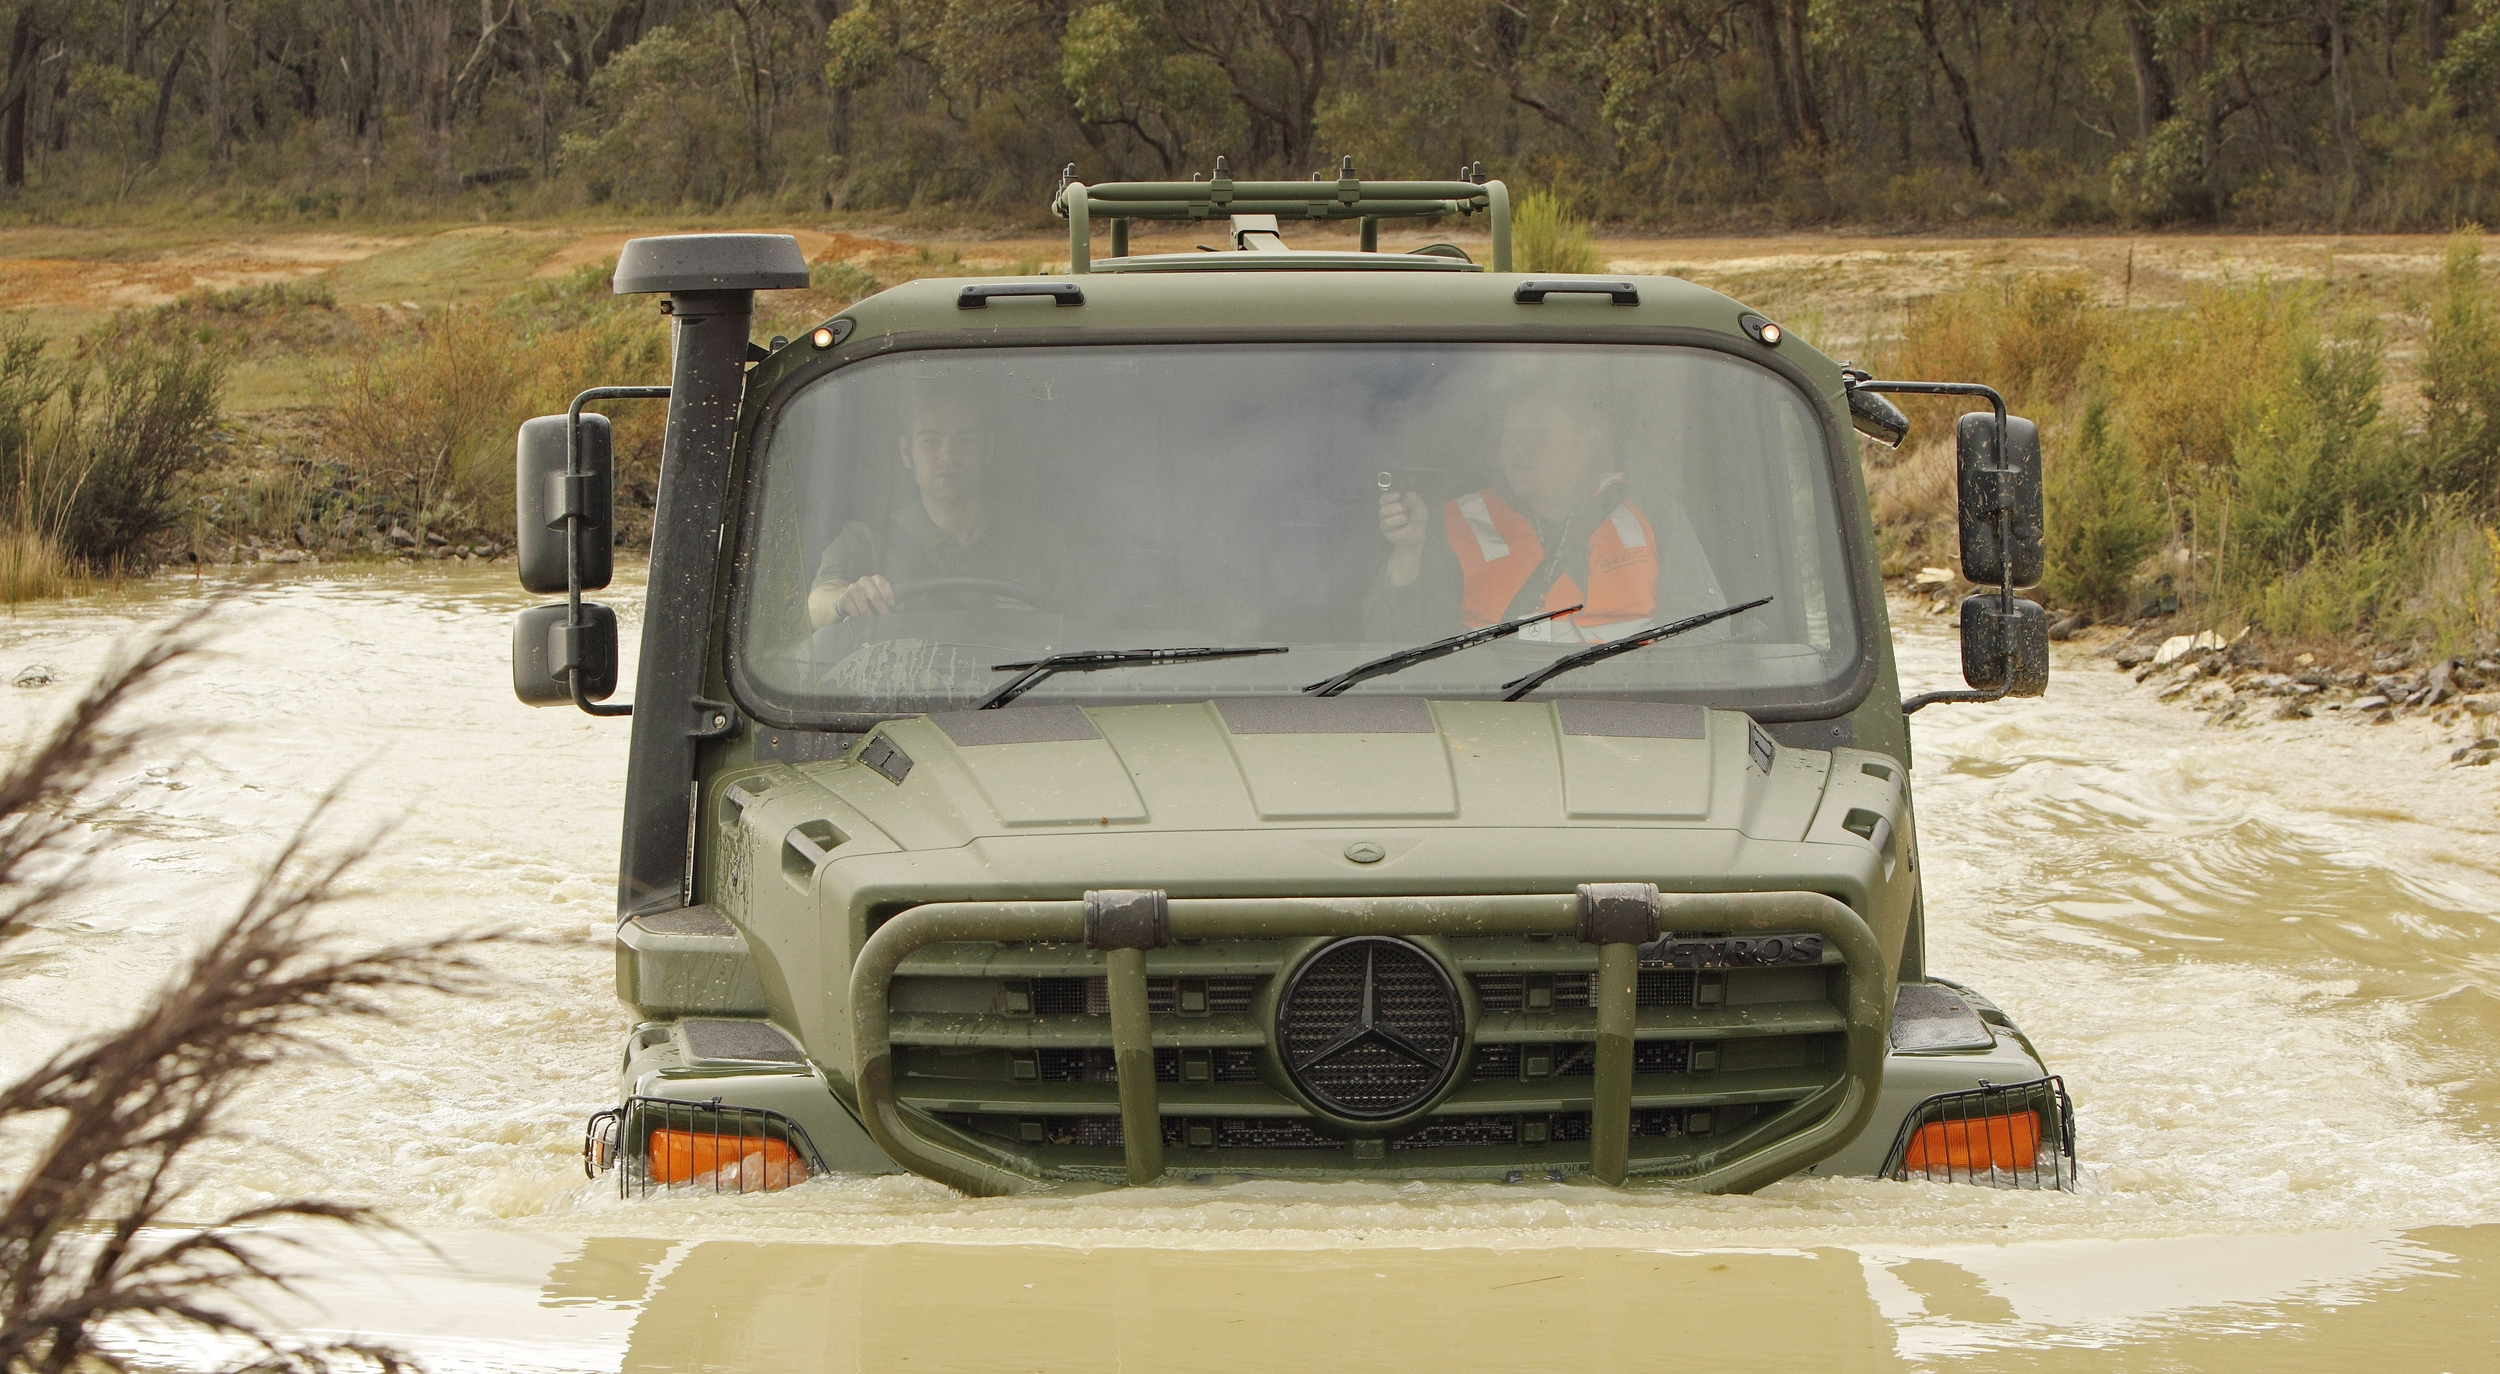 Military Vehicles For Sale Canada >> Mercedes Benz Building The Canadian Army S Next Generation